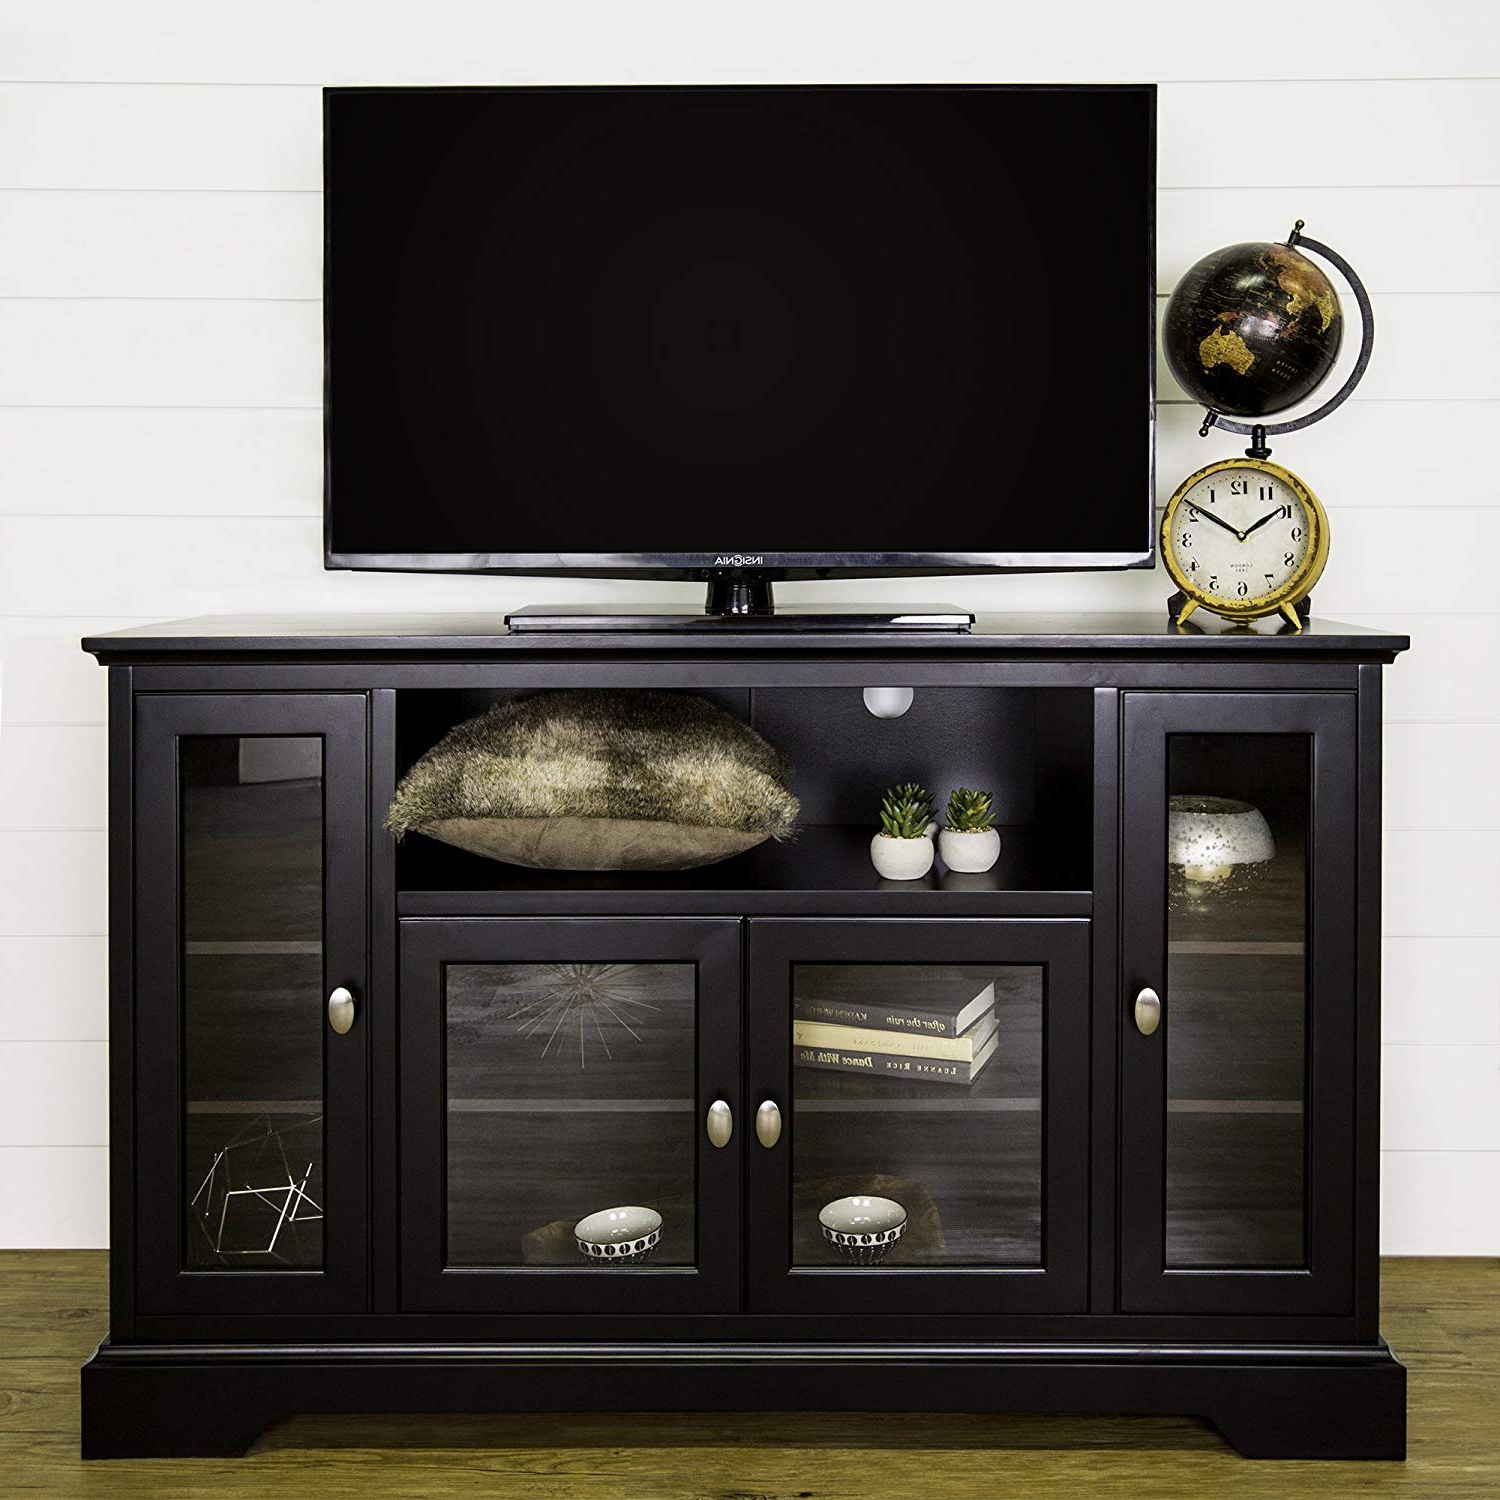 "Best And Newest Wooden Tv Stands With Doors Pertaining To Amazon: We Furniture 52"" Wood Highboy Style Tall Tv Stand (Gallery 17 of 20)"